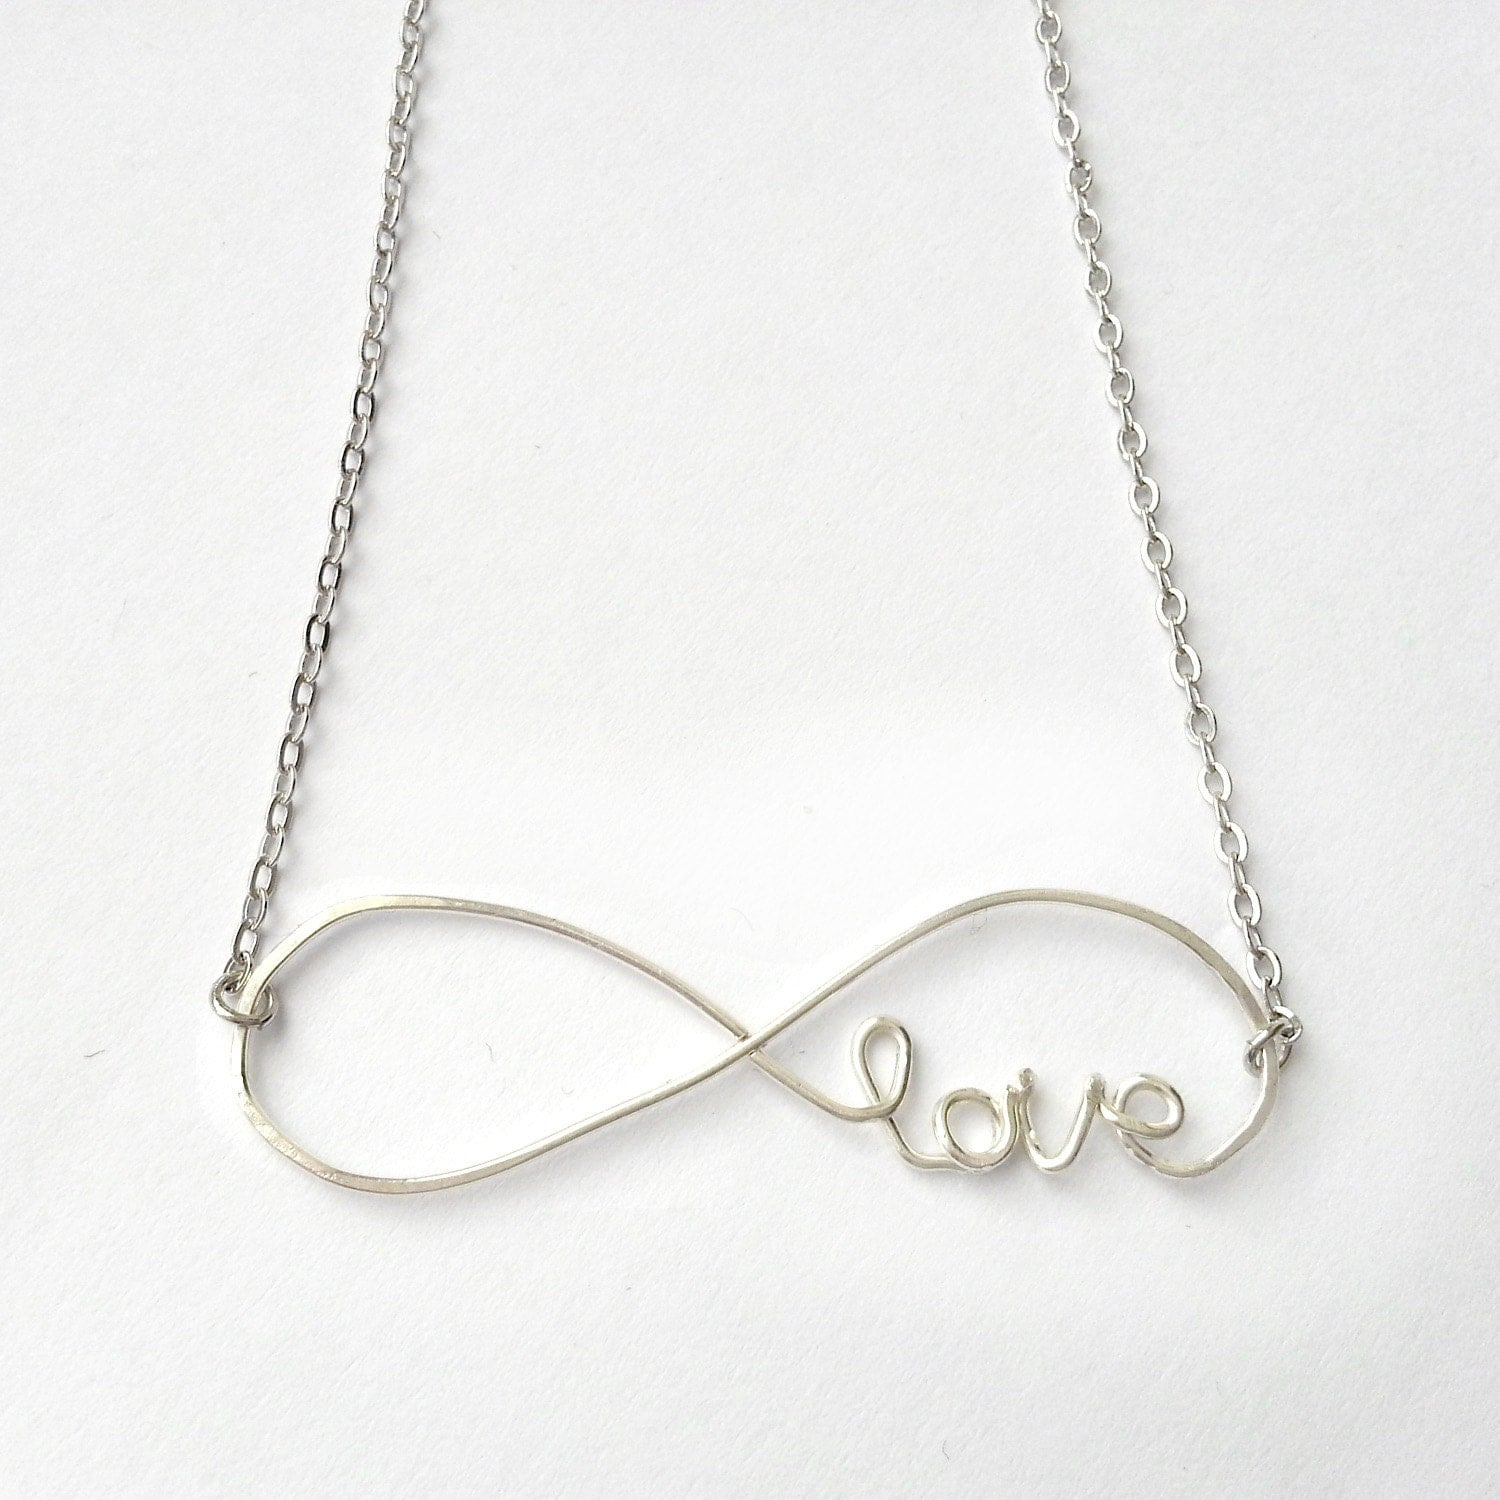 Infinity Love Necklace Infinite Love Necklace Cursive Love